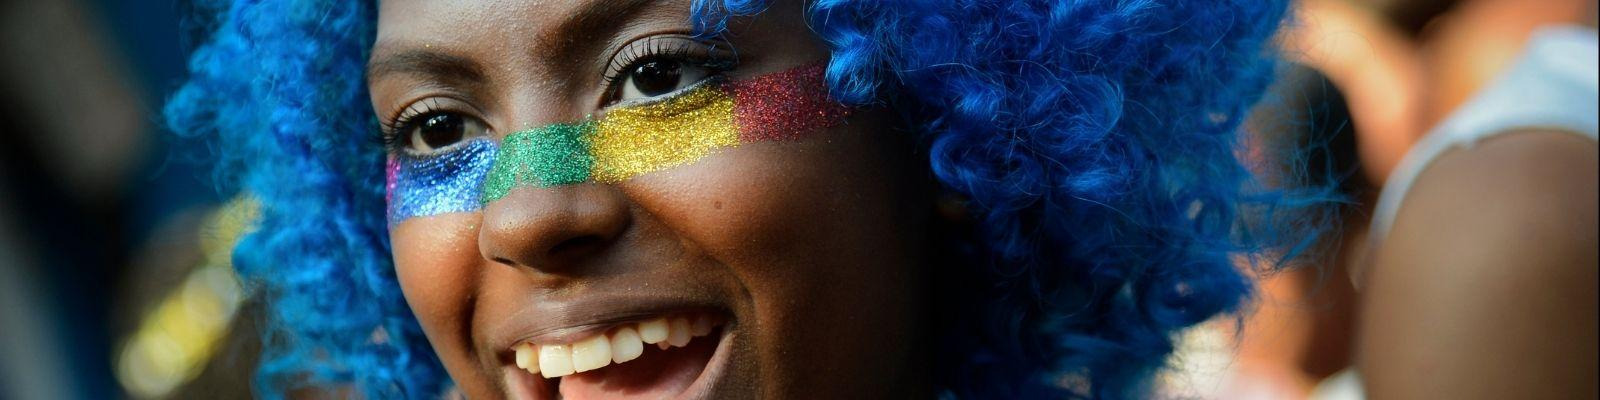 Person with rainbow face paint celebrates Pride in Brazil.